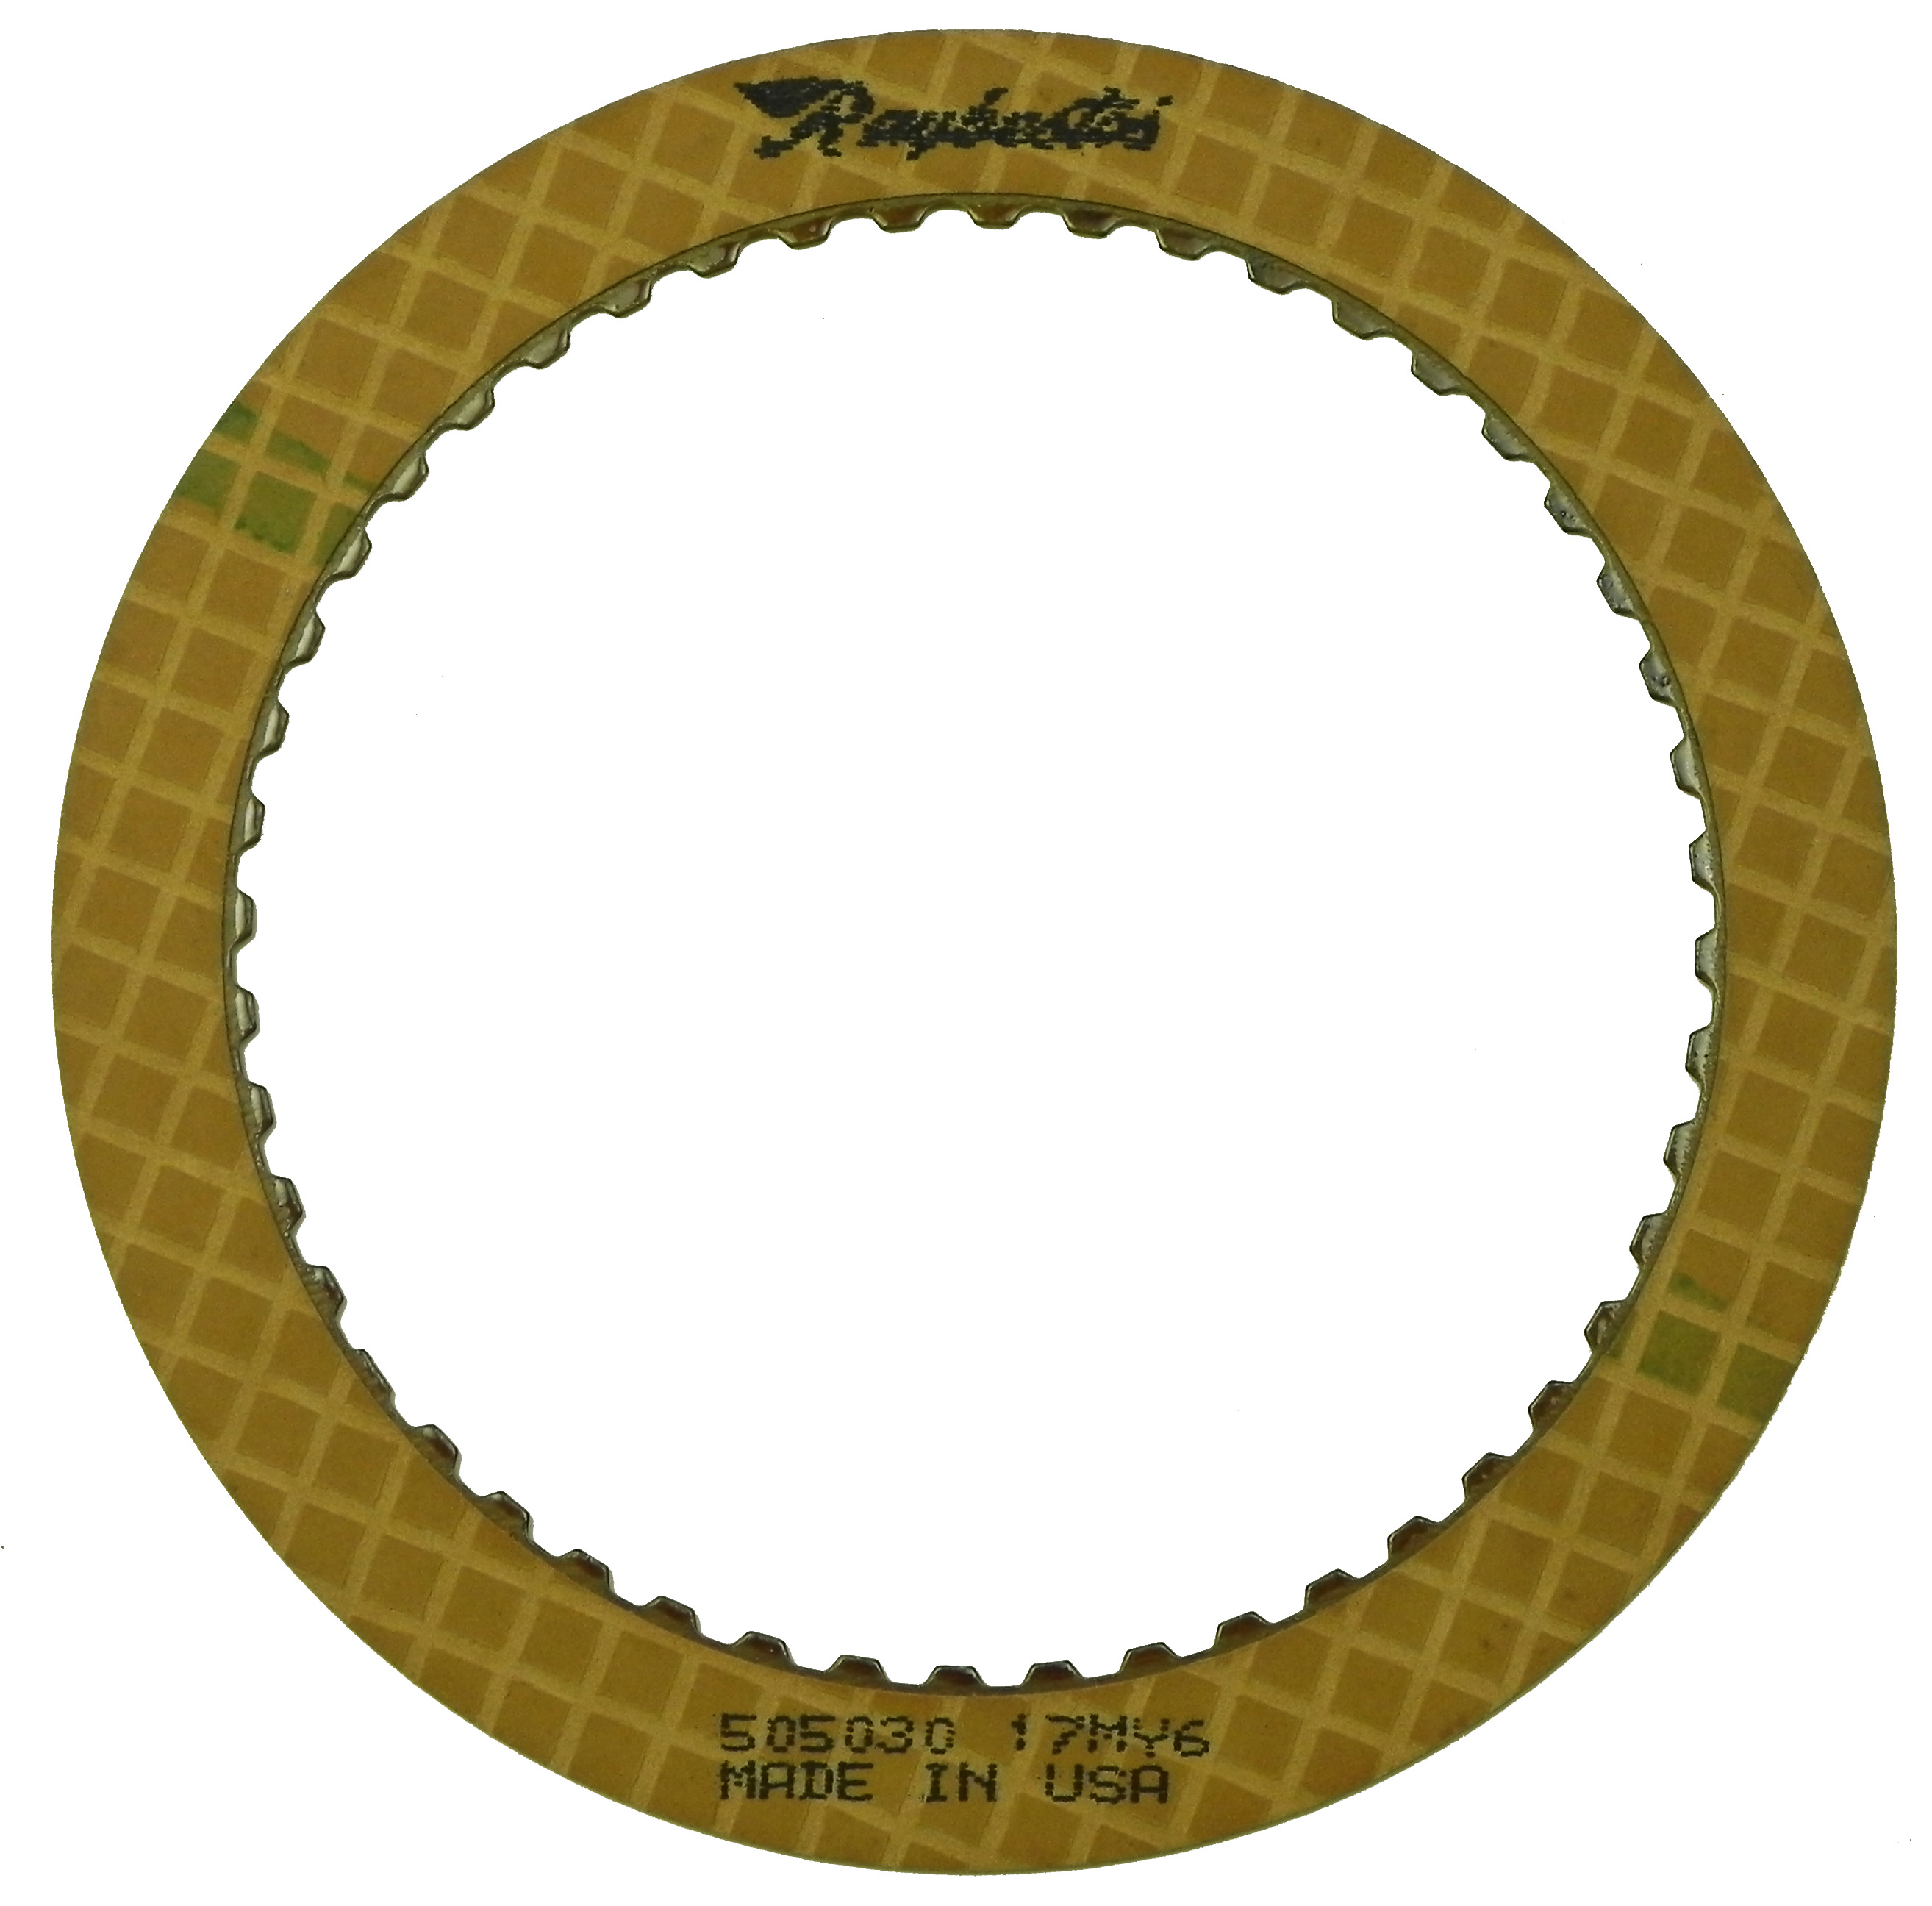 R505030   1974-ON Friction Clutch Plate OE Replacement High Reverse